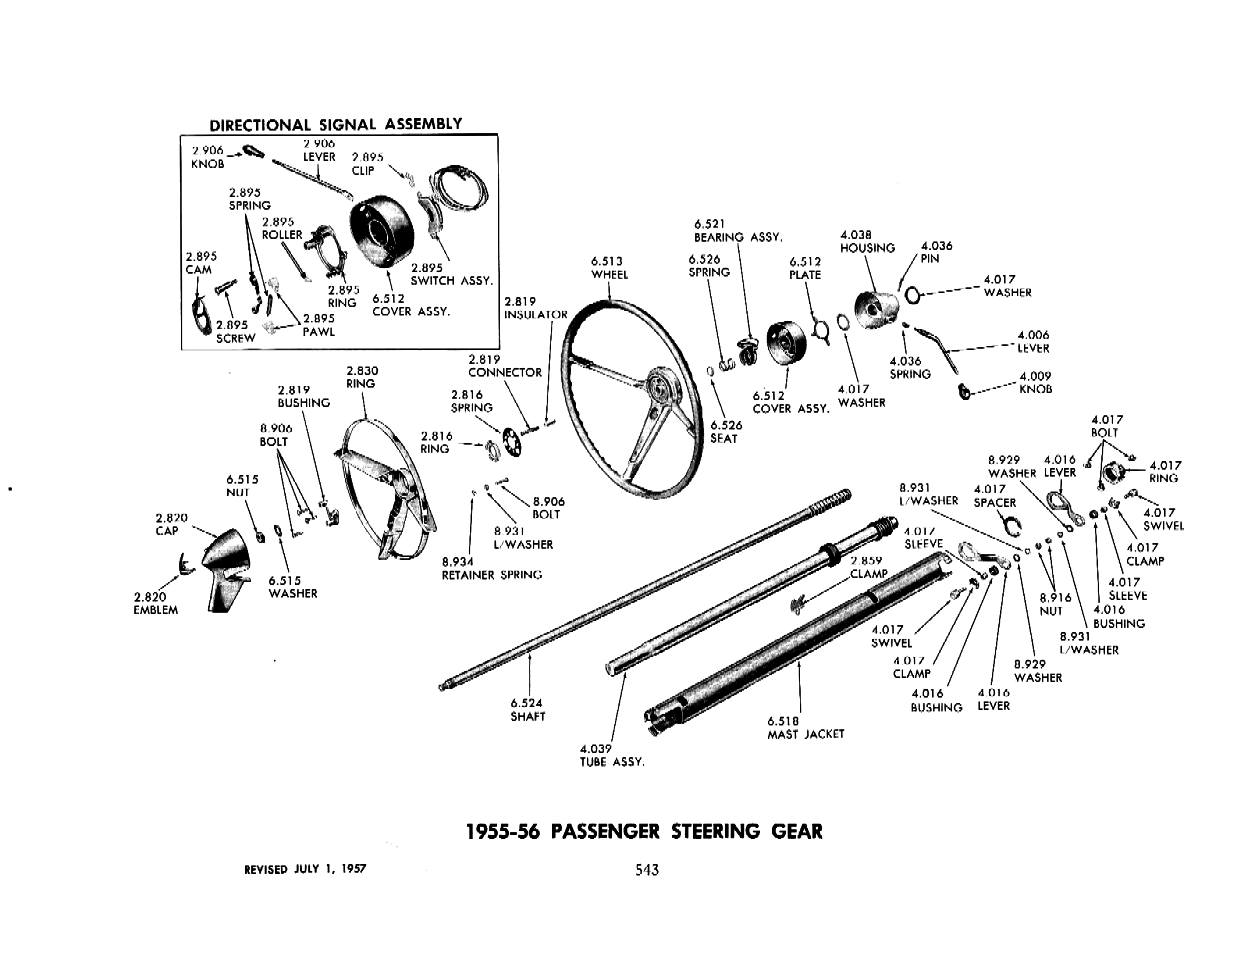 Jeep ignition switch wiring diagram jeep discover your wiring wiring diagram